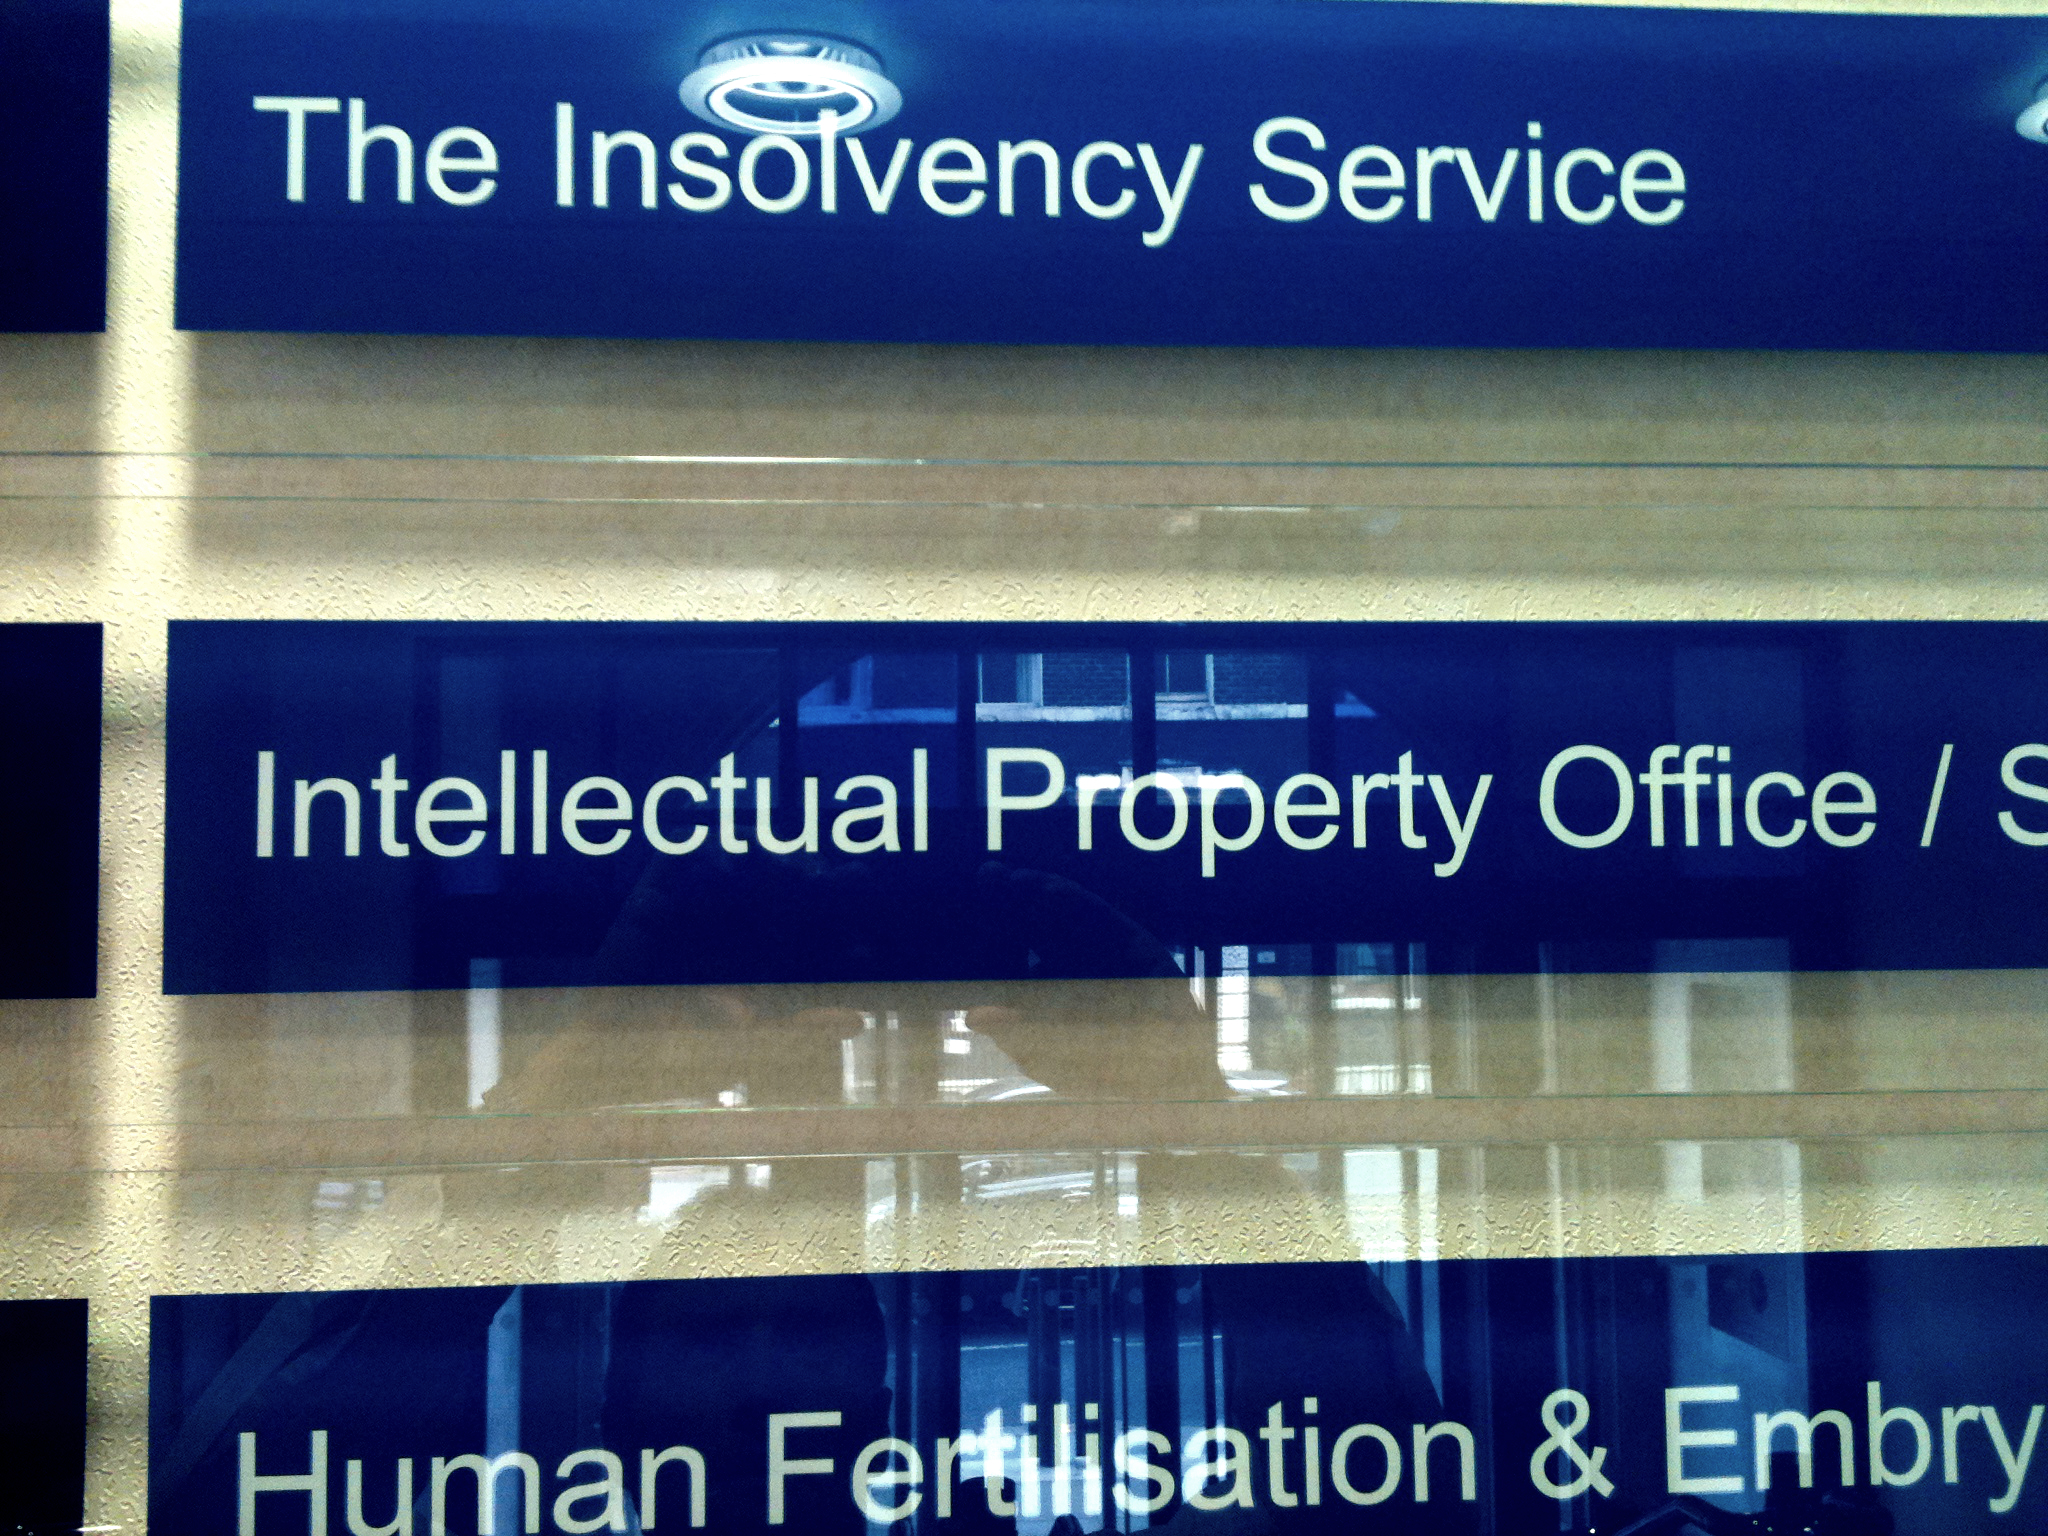 Internal Signs Illuminated Fascia IPO Intellectula Property Office sign by E Signs ® E Signs is the registered trade mark of Lewis Critchley www.e-signs.co.uk